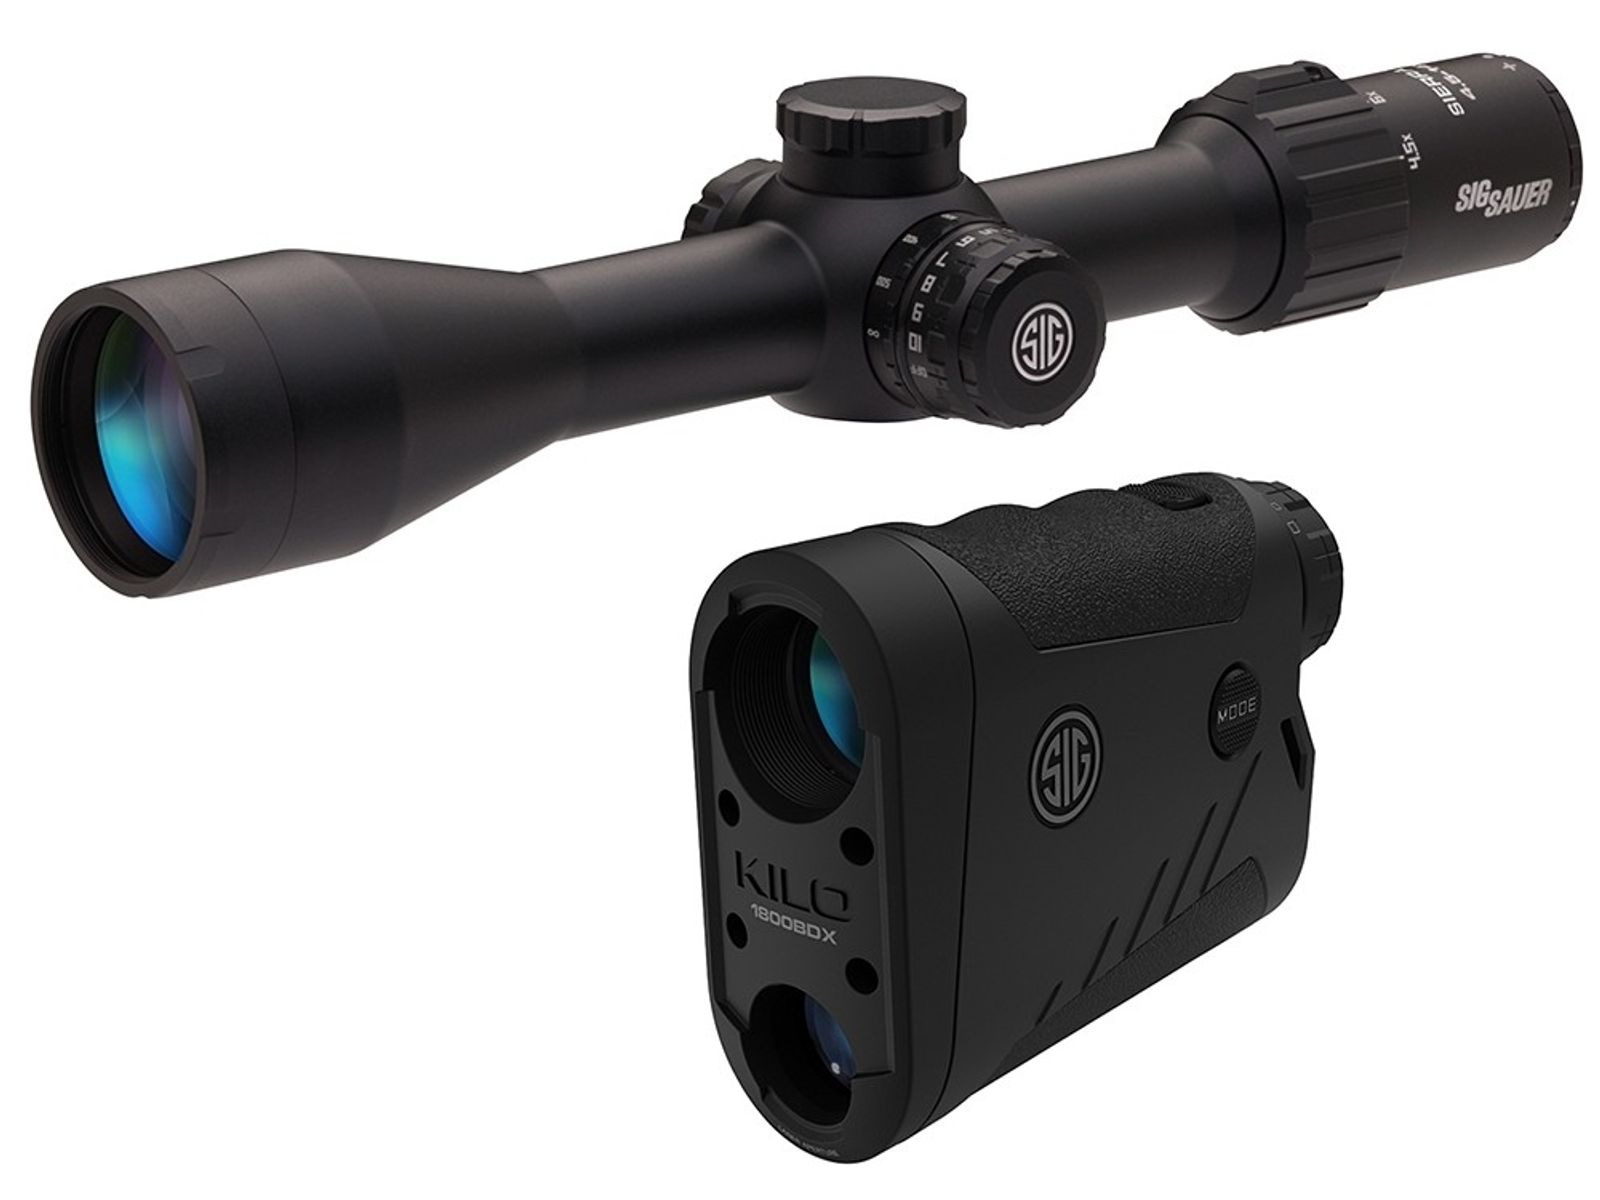 Das revolutionäre bdx optikpaket von sig sauer electro optics